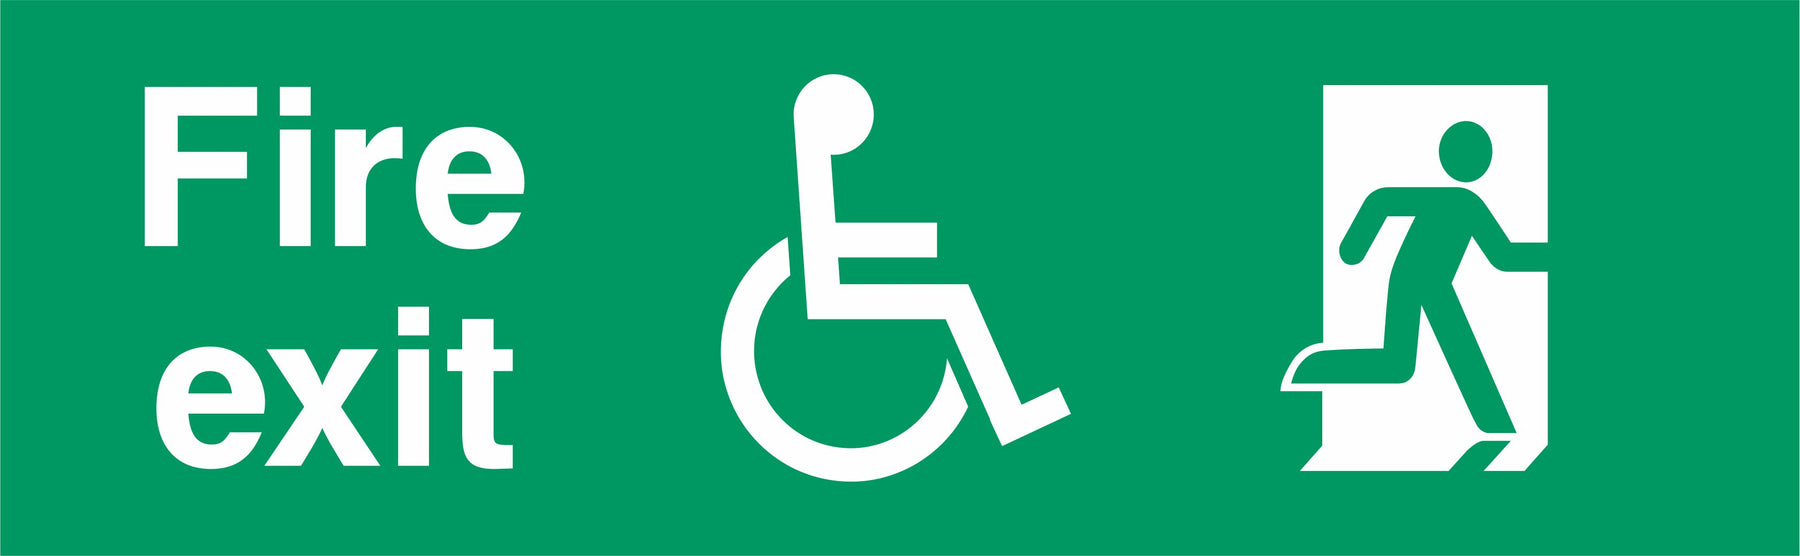 Fire exit - Running Man Right - Disabled logo